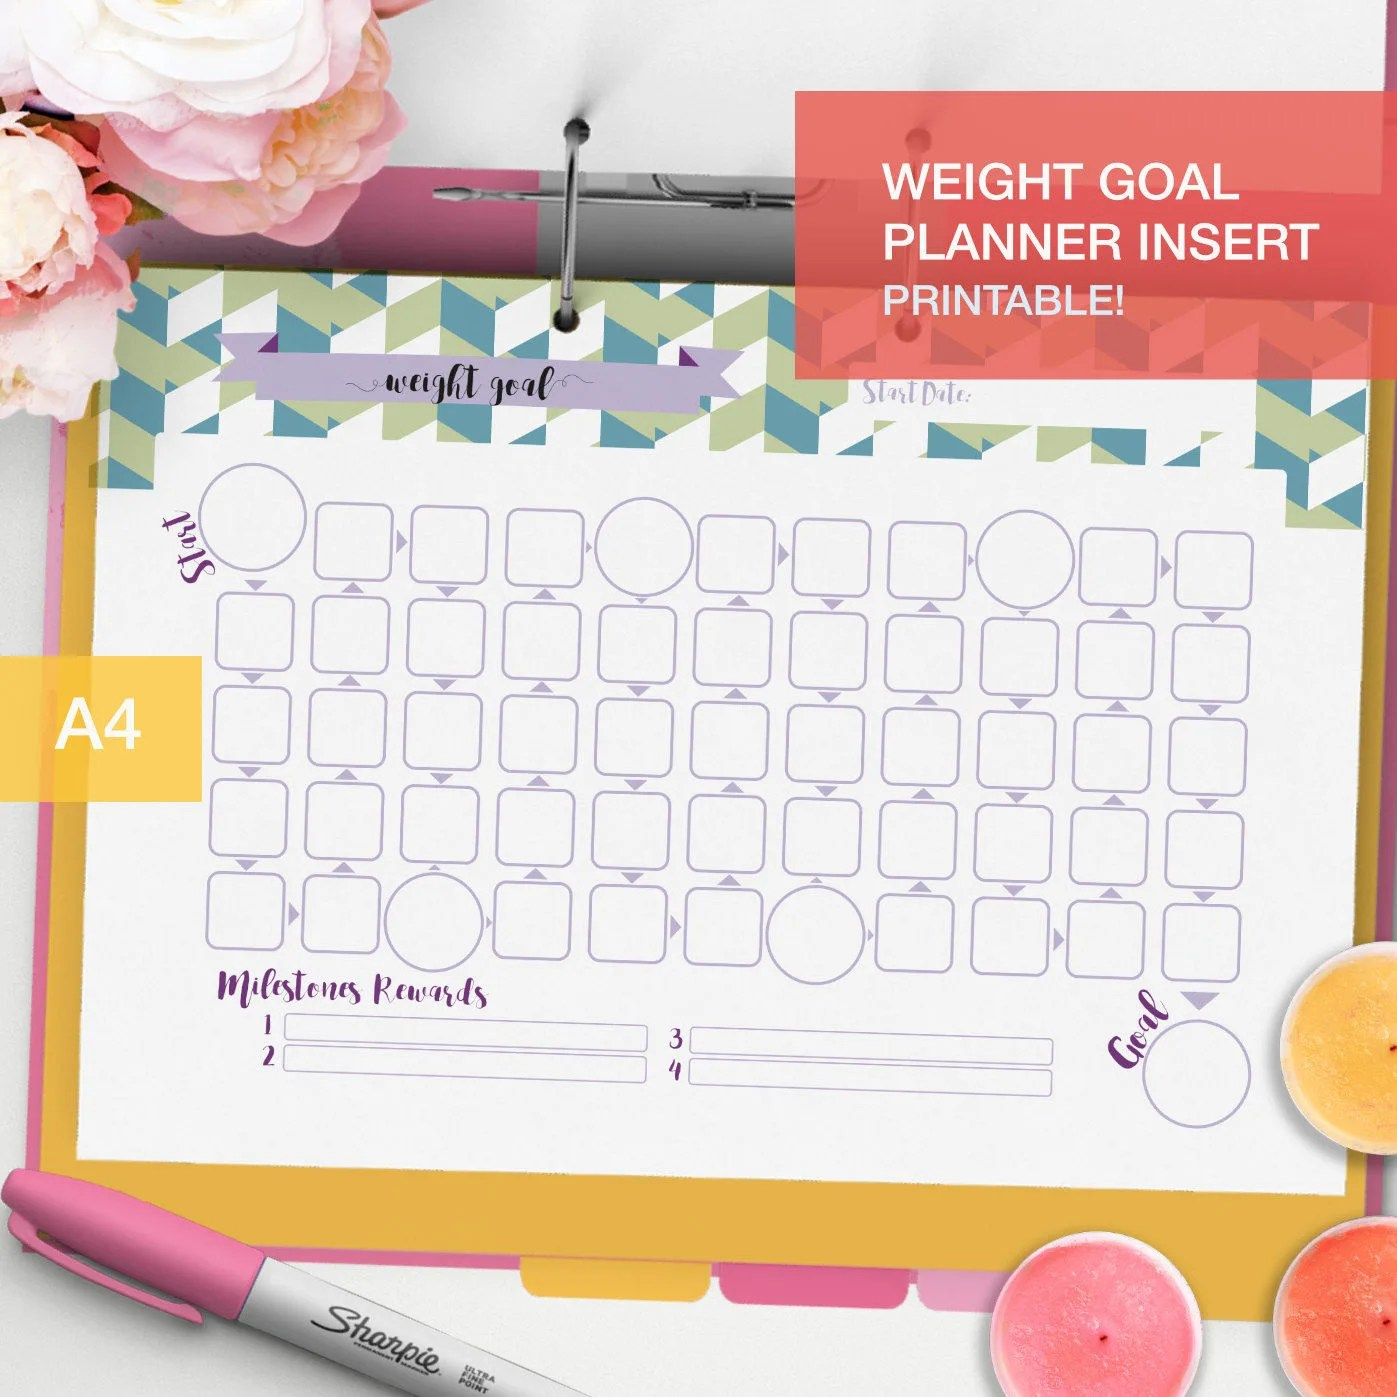 Printable Weight Goal Planner Inserts